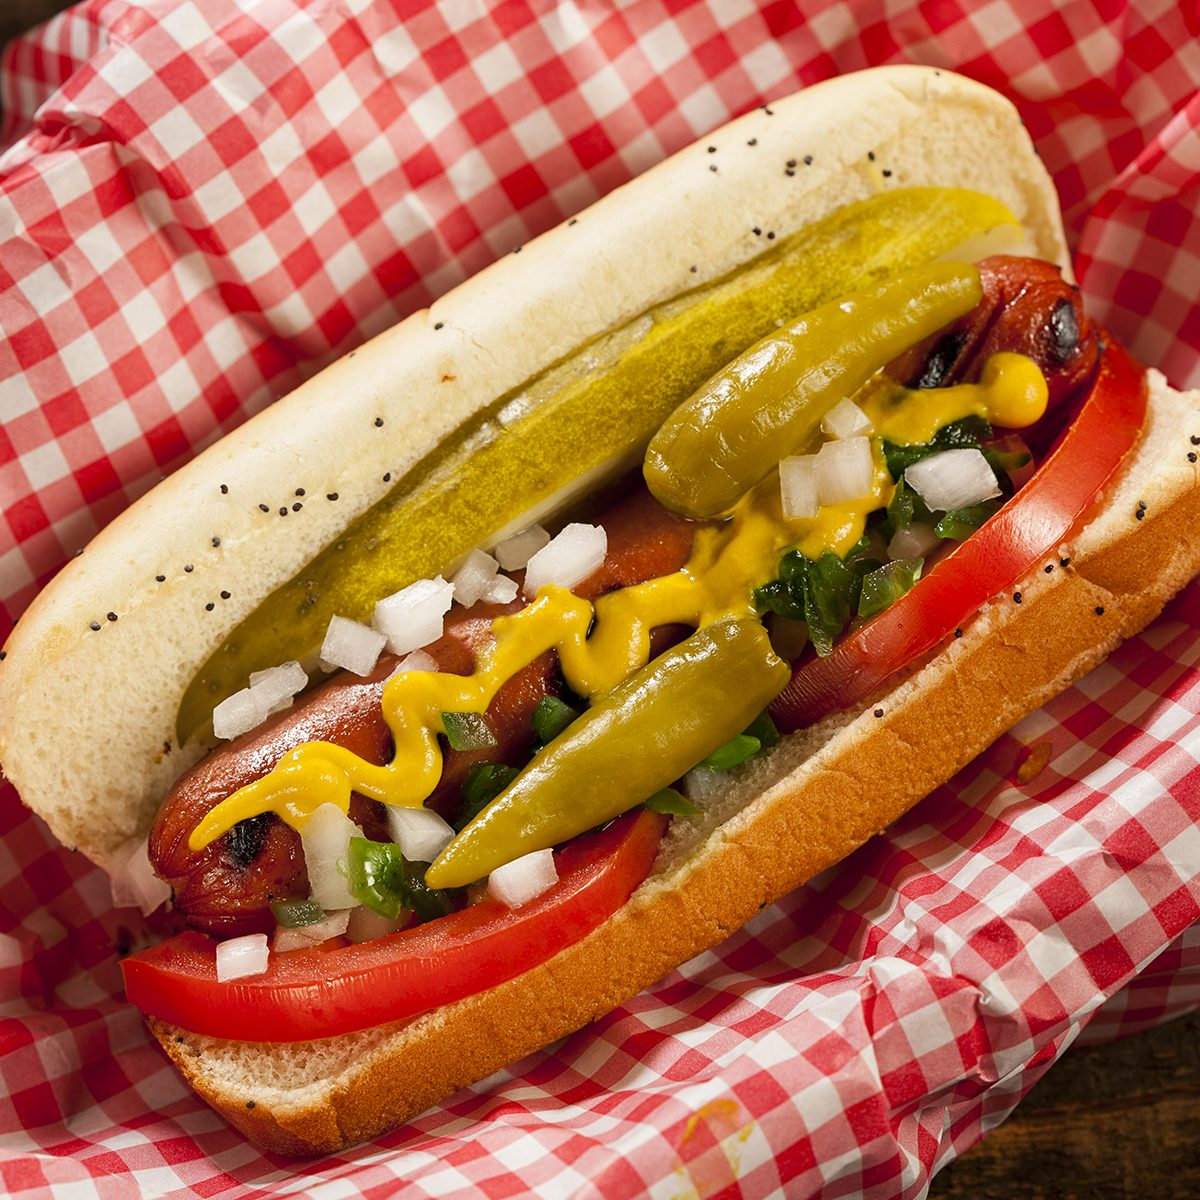 Chicago Style Hot Dog with Mustard, Pickle, Tomato, Relish and Onion;